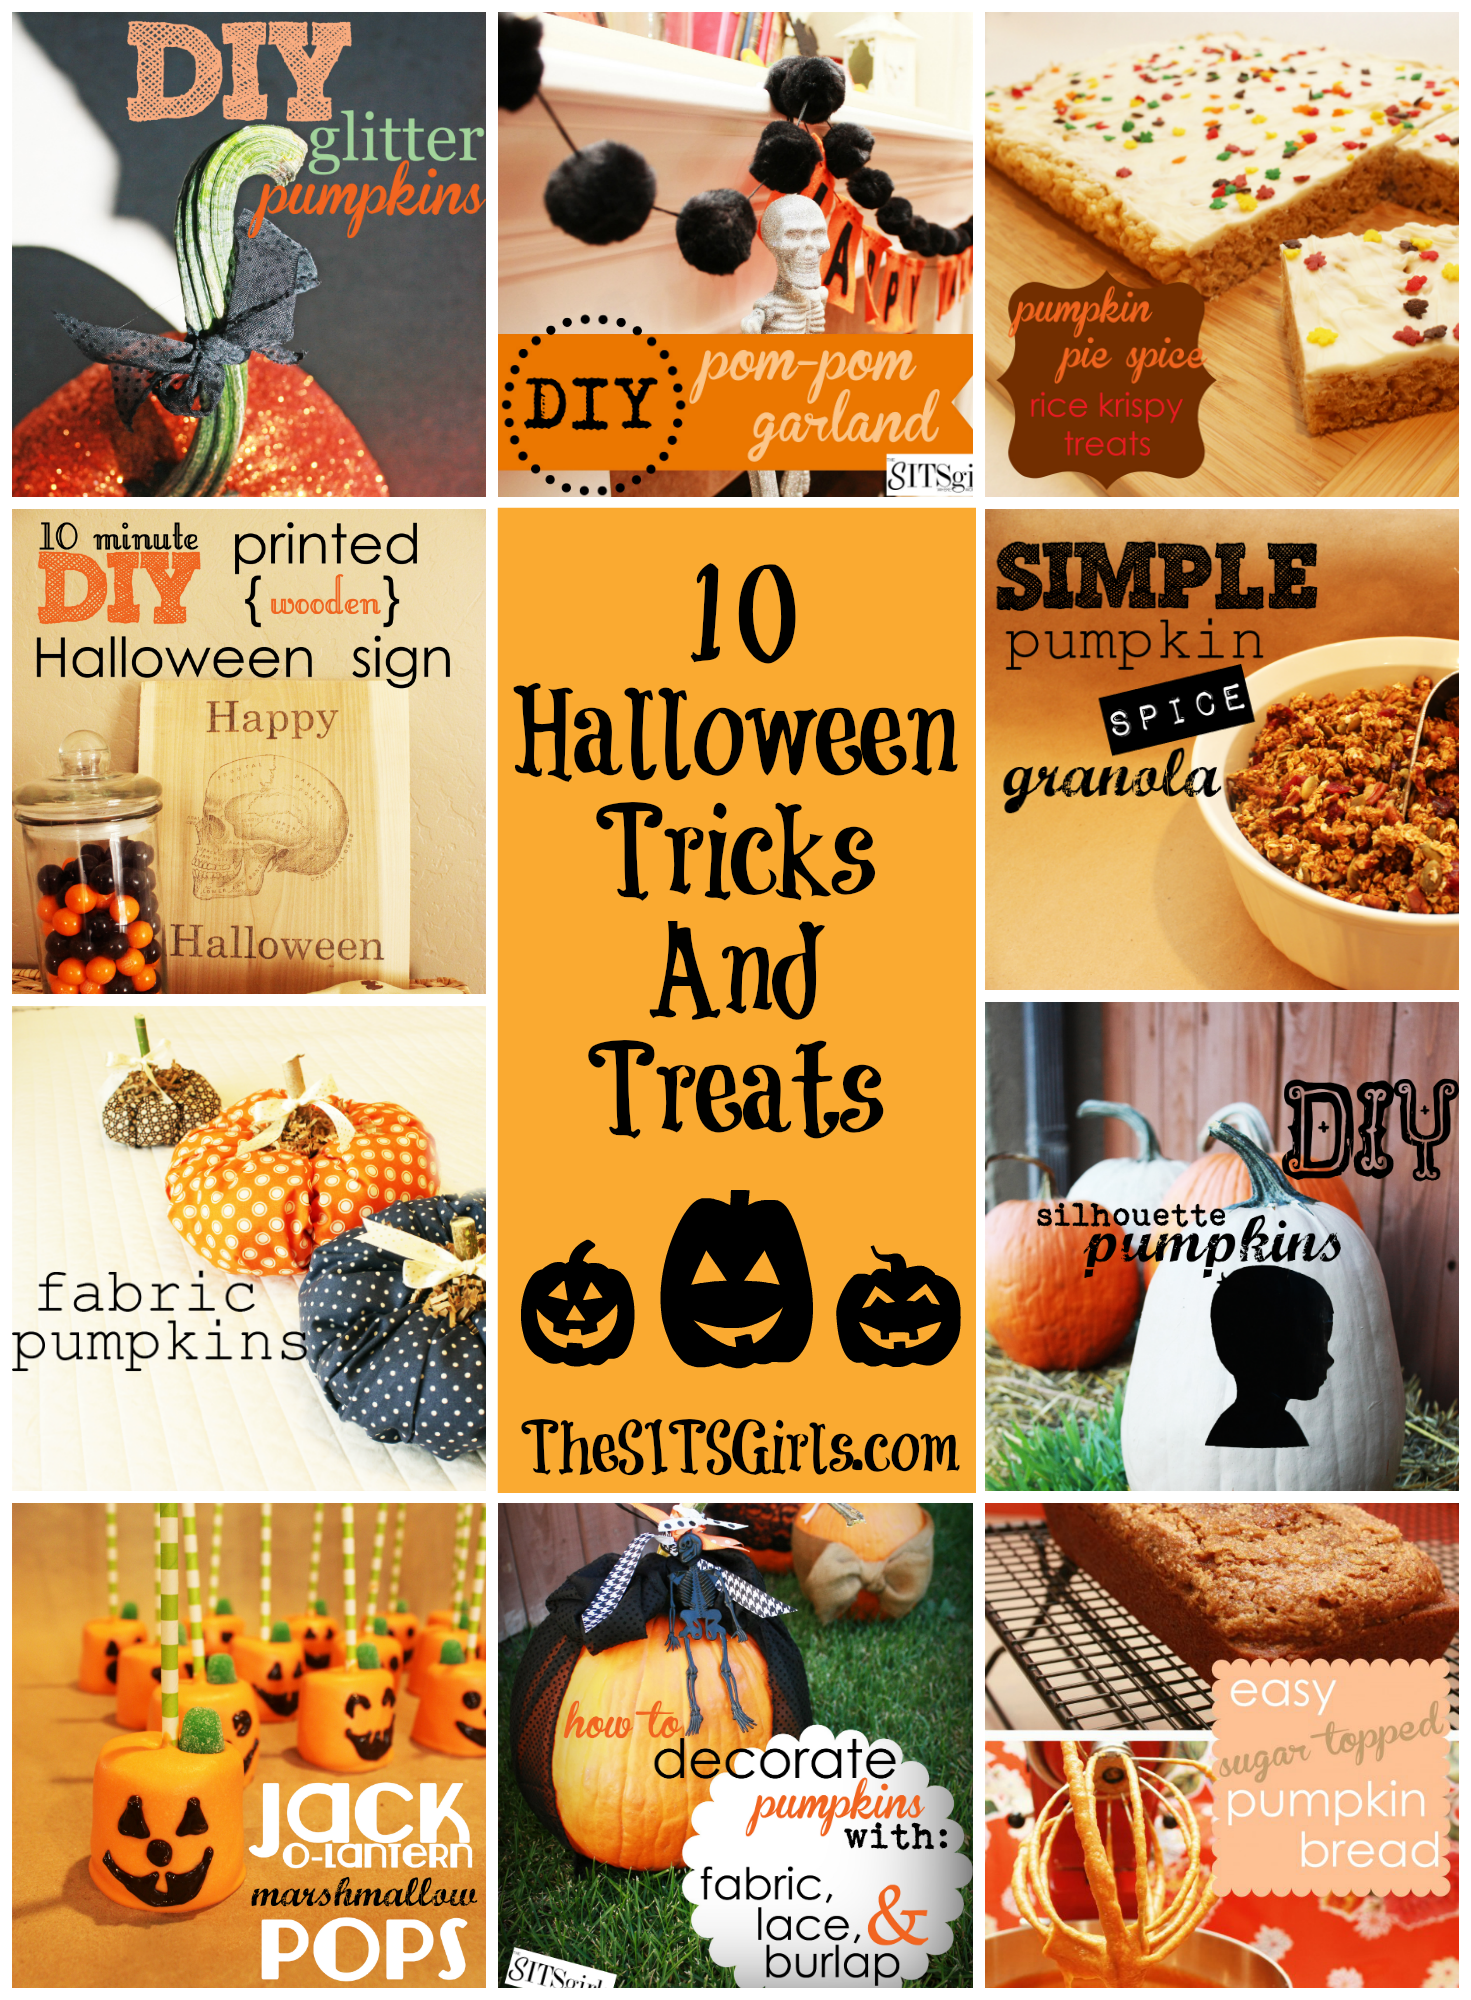 10 halloween ideas with craft and recipe tutorials from pumpkin spice granola to decorating pumpkins - Halloween Trick Ideas